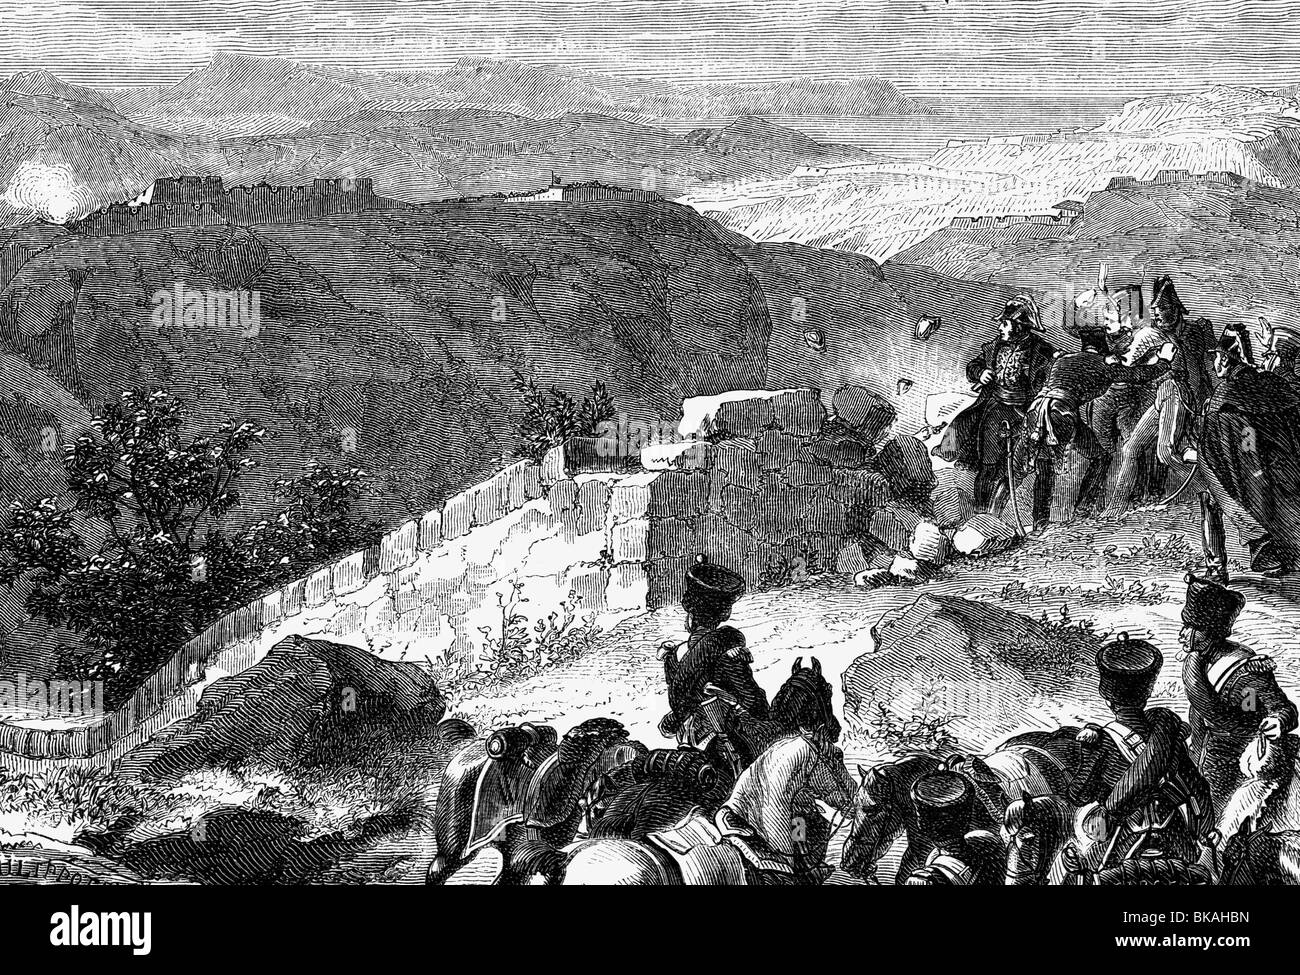 Masséna, André, 6.5.1756 - 14.4.1817, French general, before the Lines of torres Vedras, 1810, wood engraving, - Stock Image